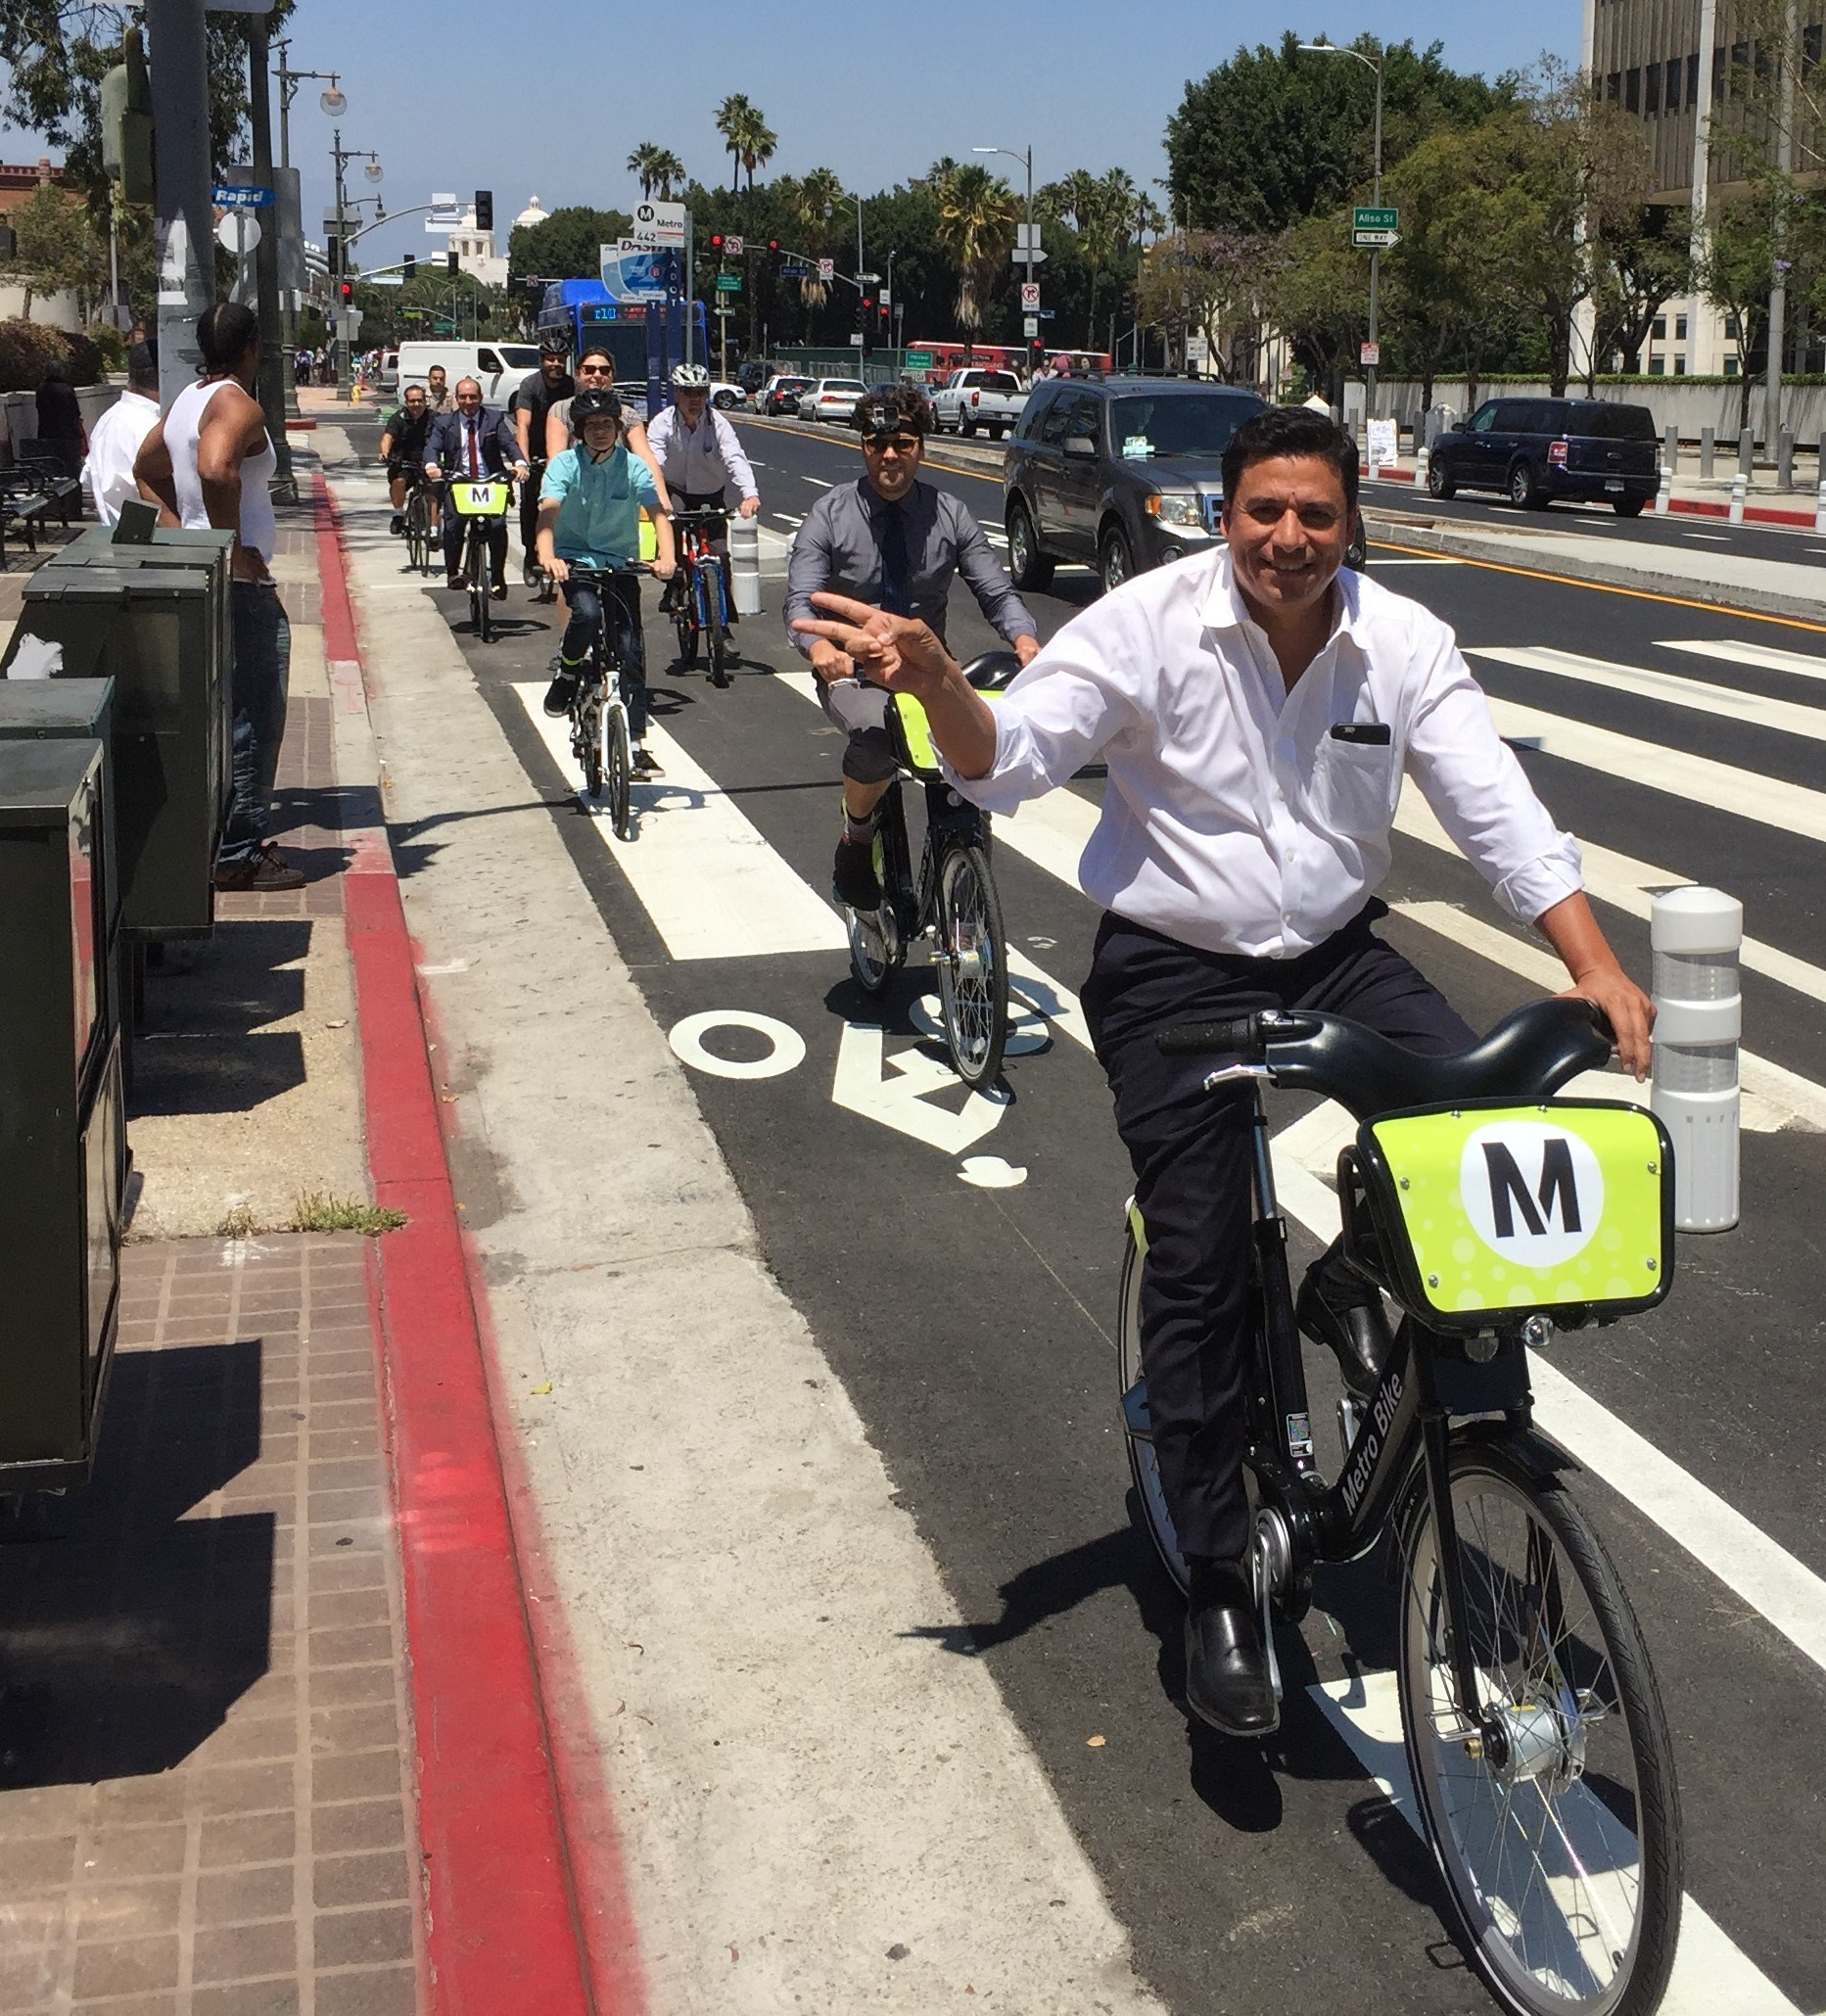 22_los_angeles_st_cycletrack.jpg